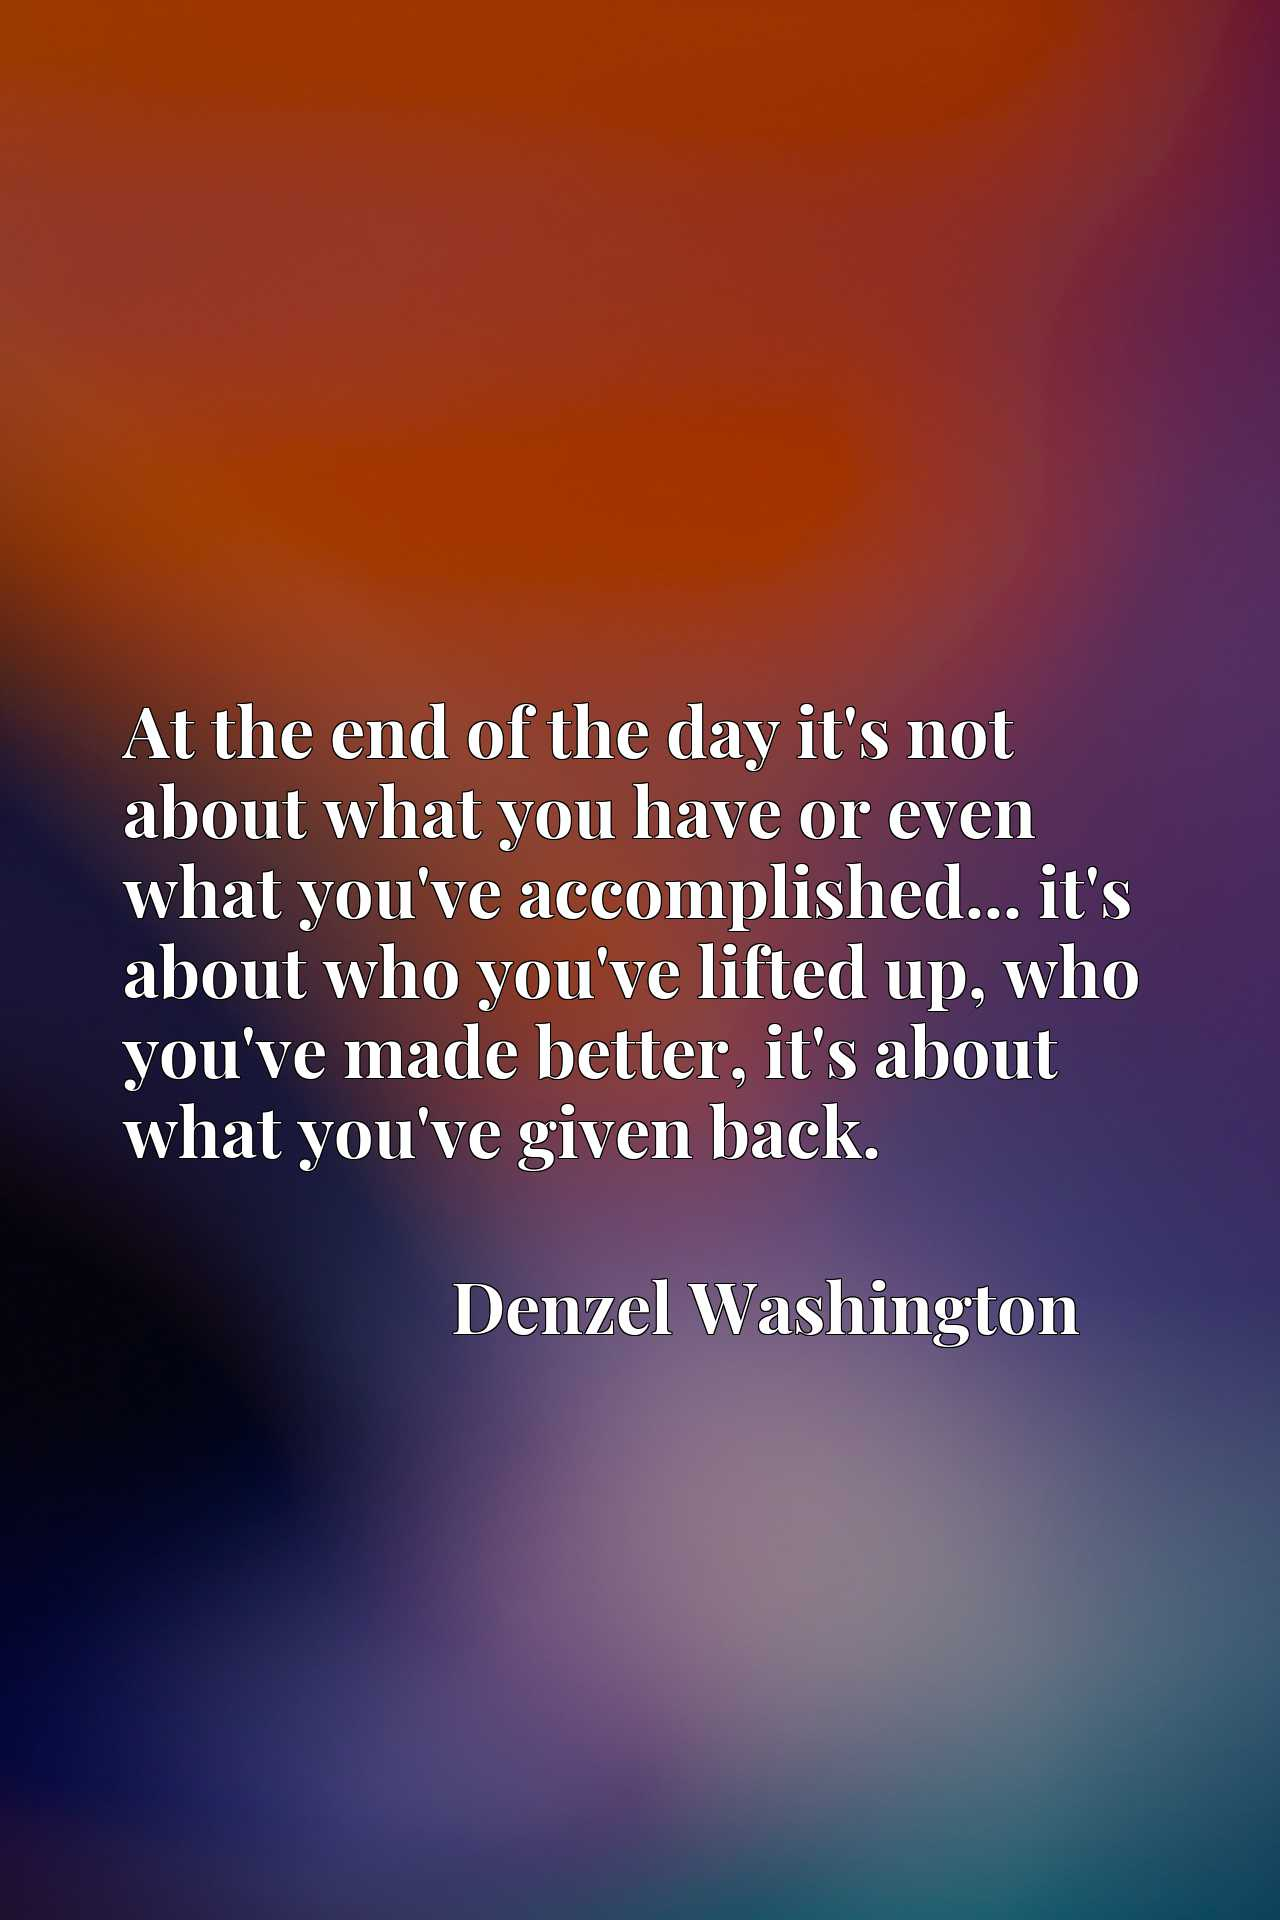 Quote Picture :At the end of the day it's not about what you have or even what you've accomplished... it's about who you've lifted up, who you've made better, it's about what you've given back.